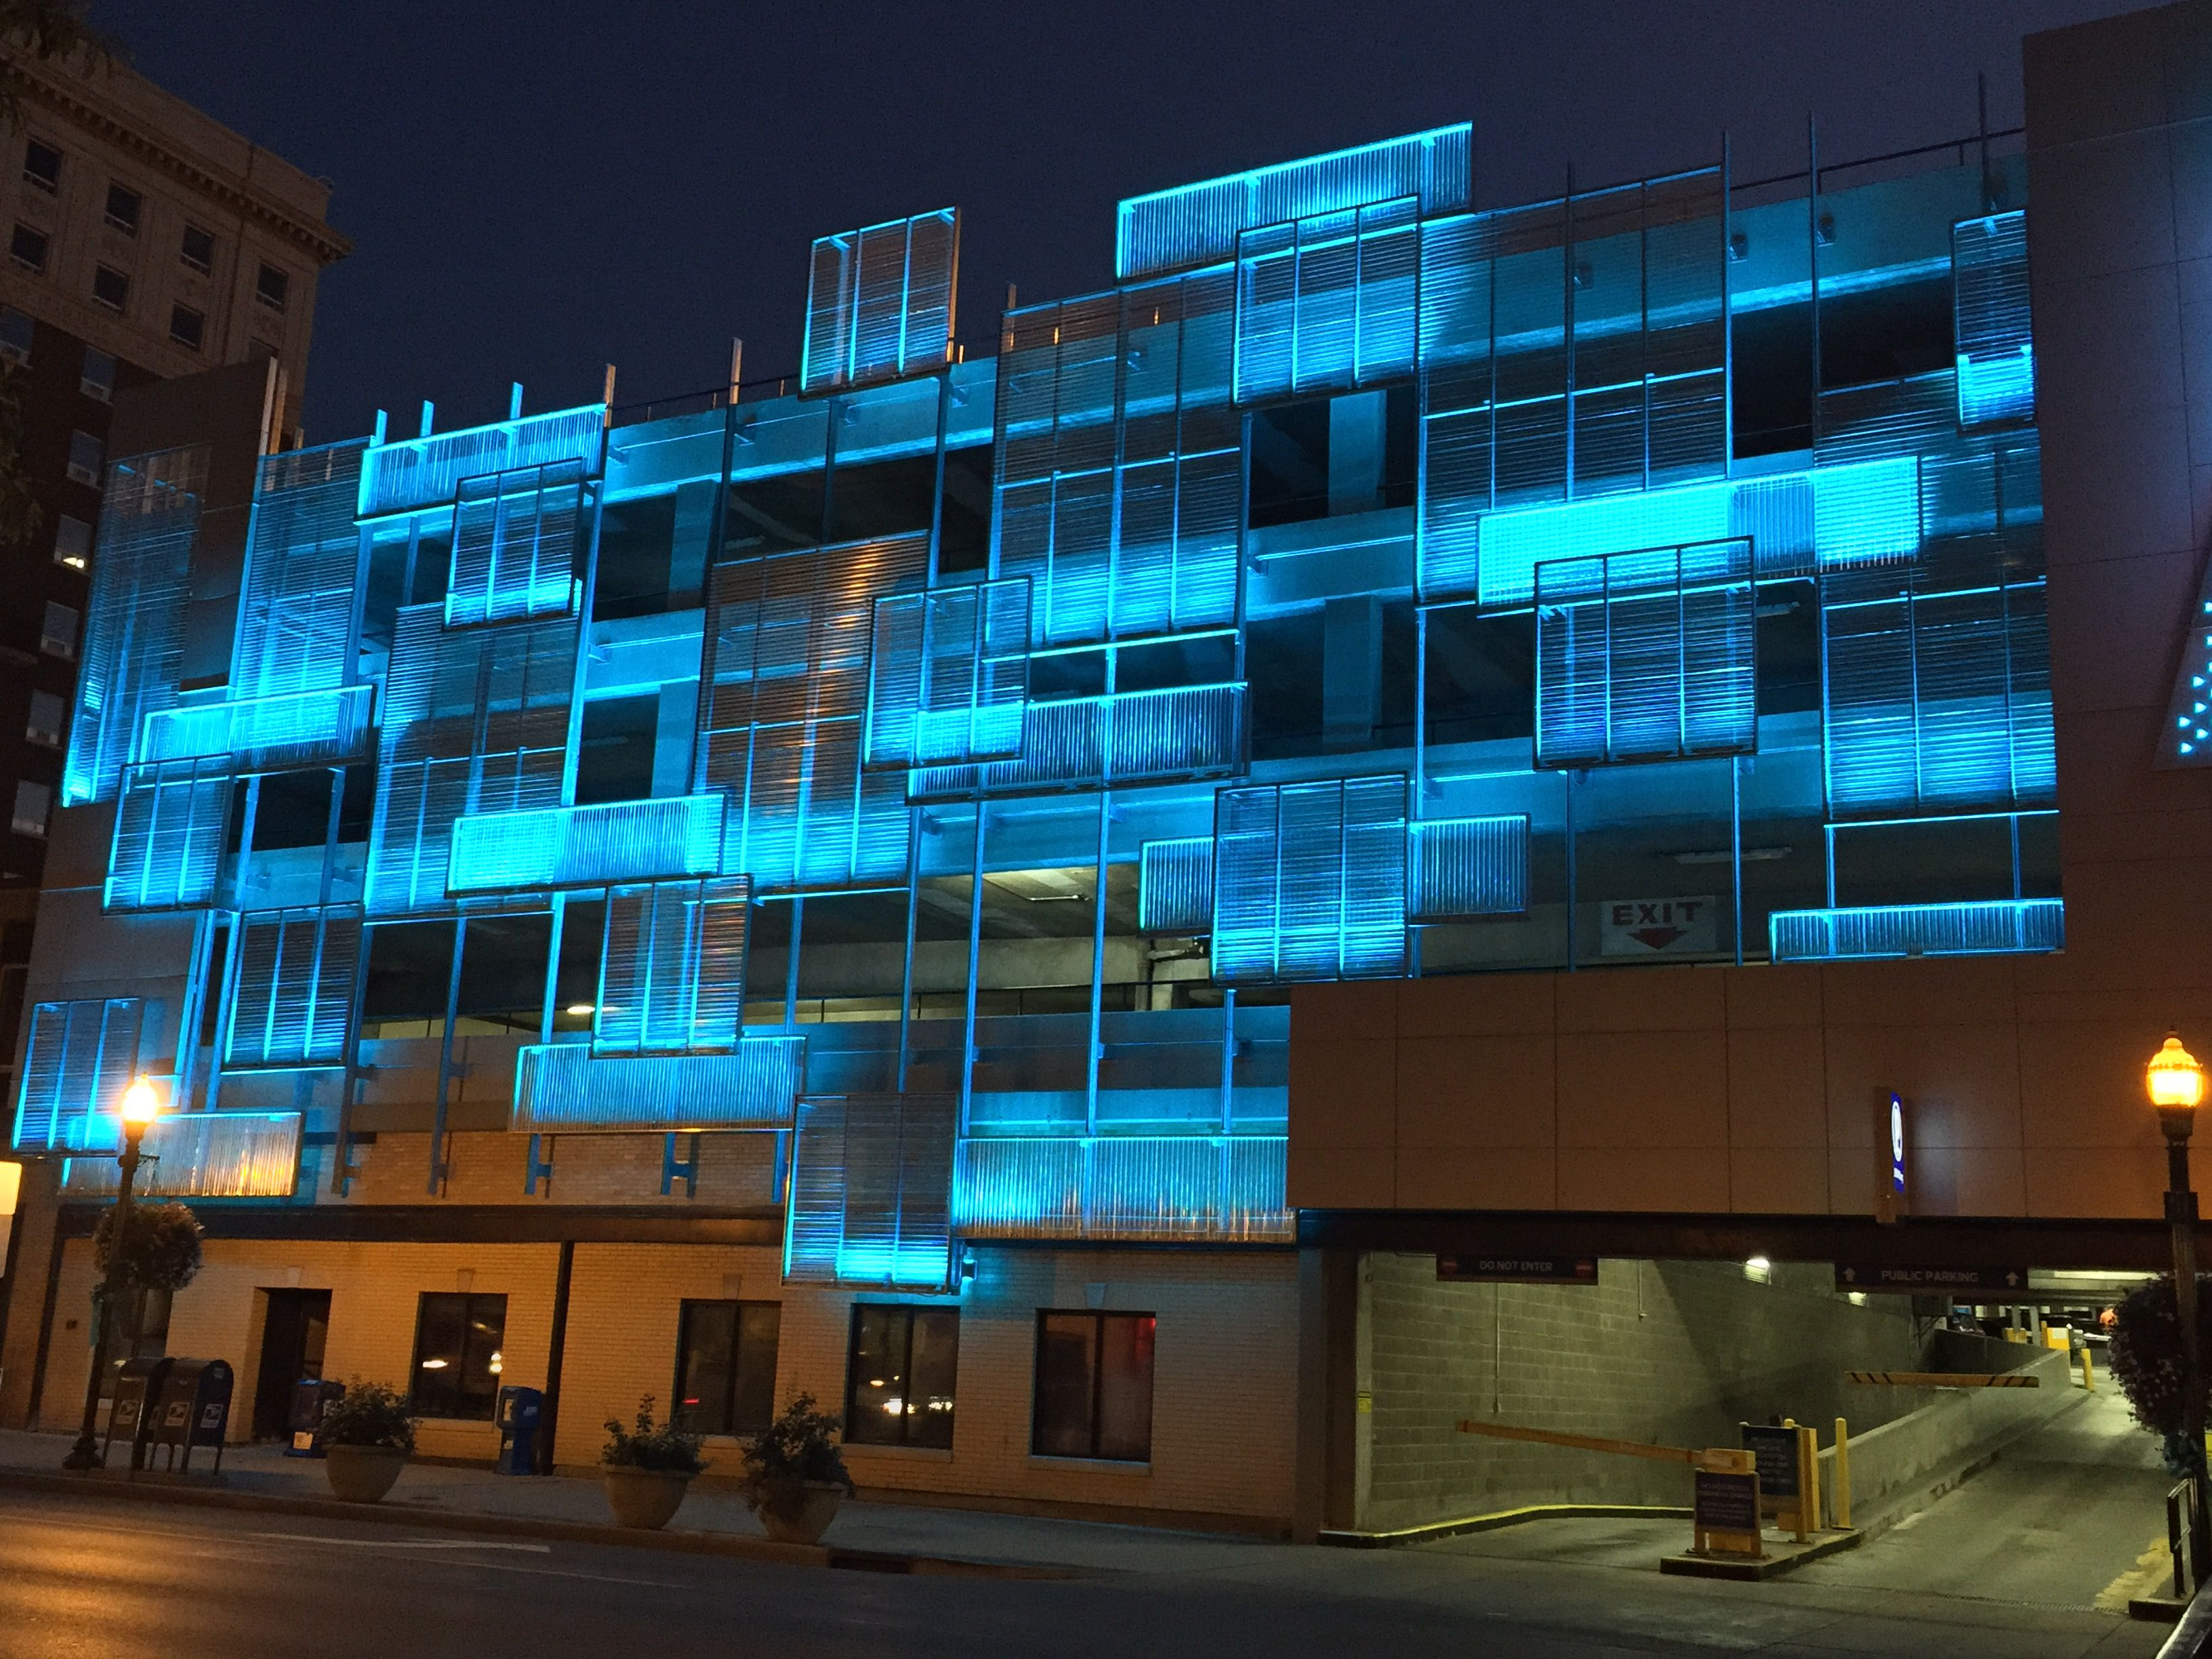 Unique Lighting Design On The Outside Of A Parking Garage In